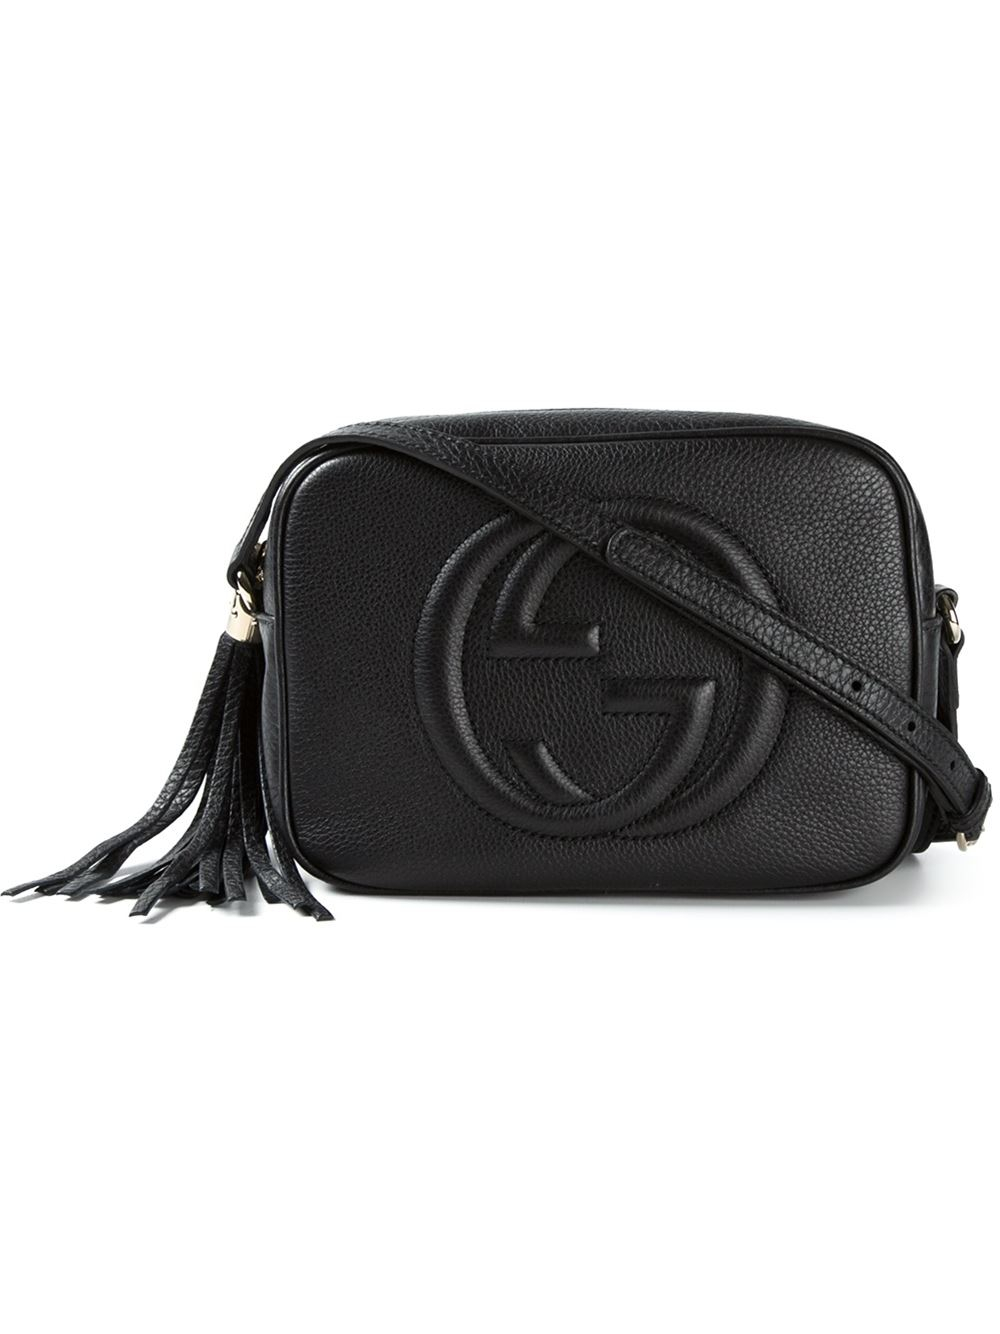 Hermes Carmine Black Crossbody Leather Bag. Hermès, Hermès. Get weekly alerts when there are new arrivals for Hermès Crossbody Bags and Messenger Bags. Follow. More Ways to Browse. Small Purses. Embossed Leather Messenger Bags. Small Messenger Bags. Black Leather Crossbody Bags.